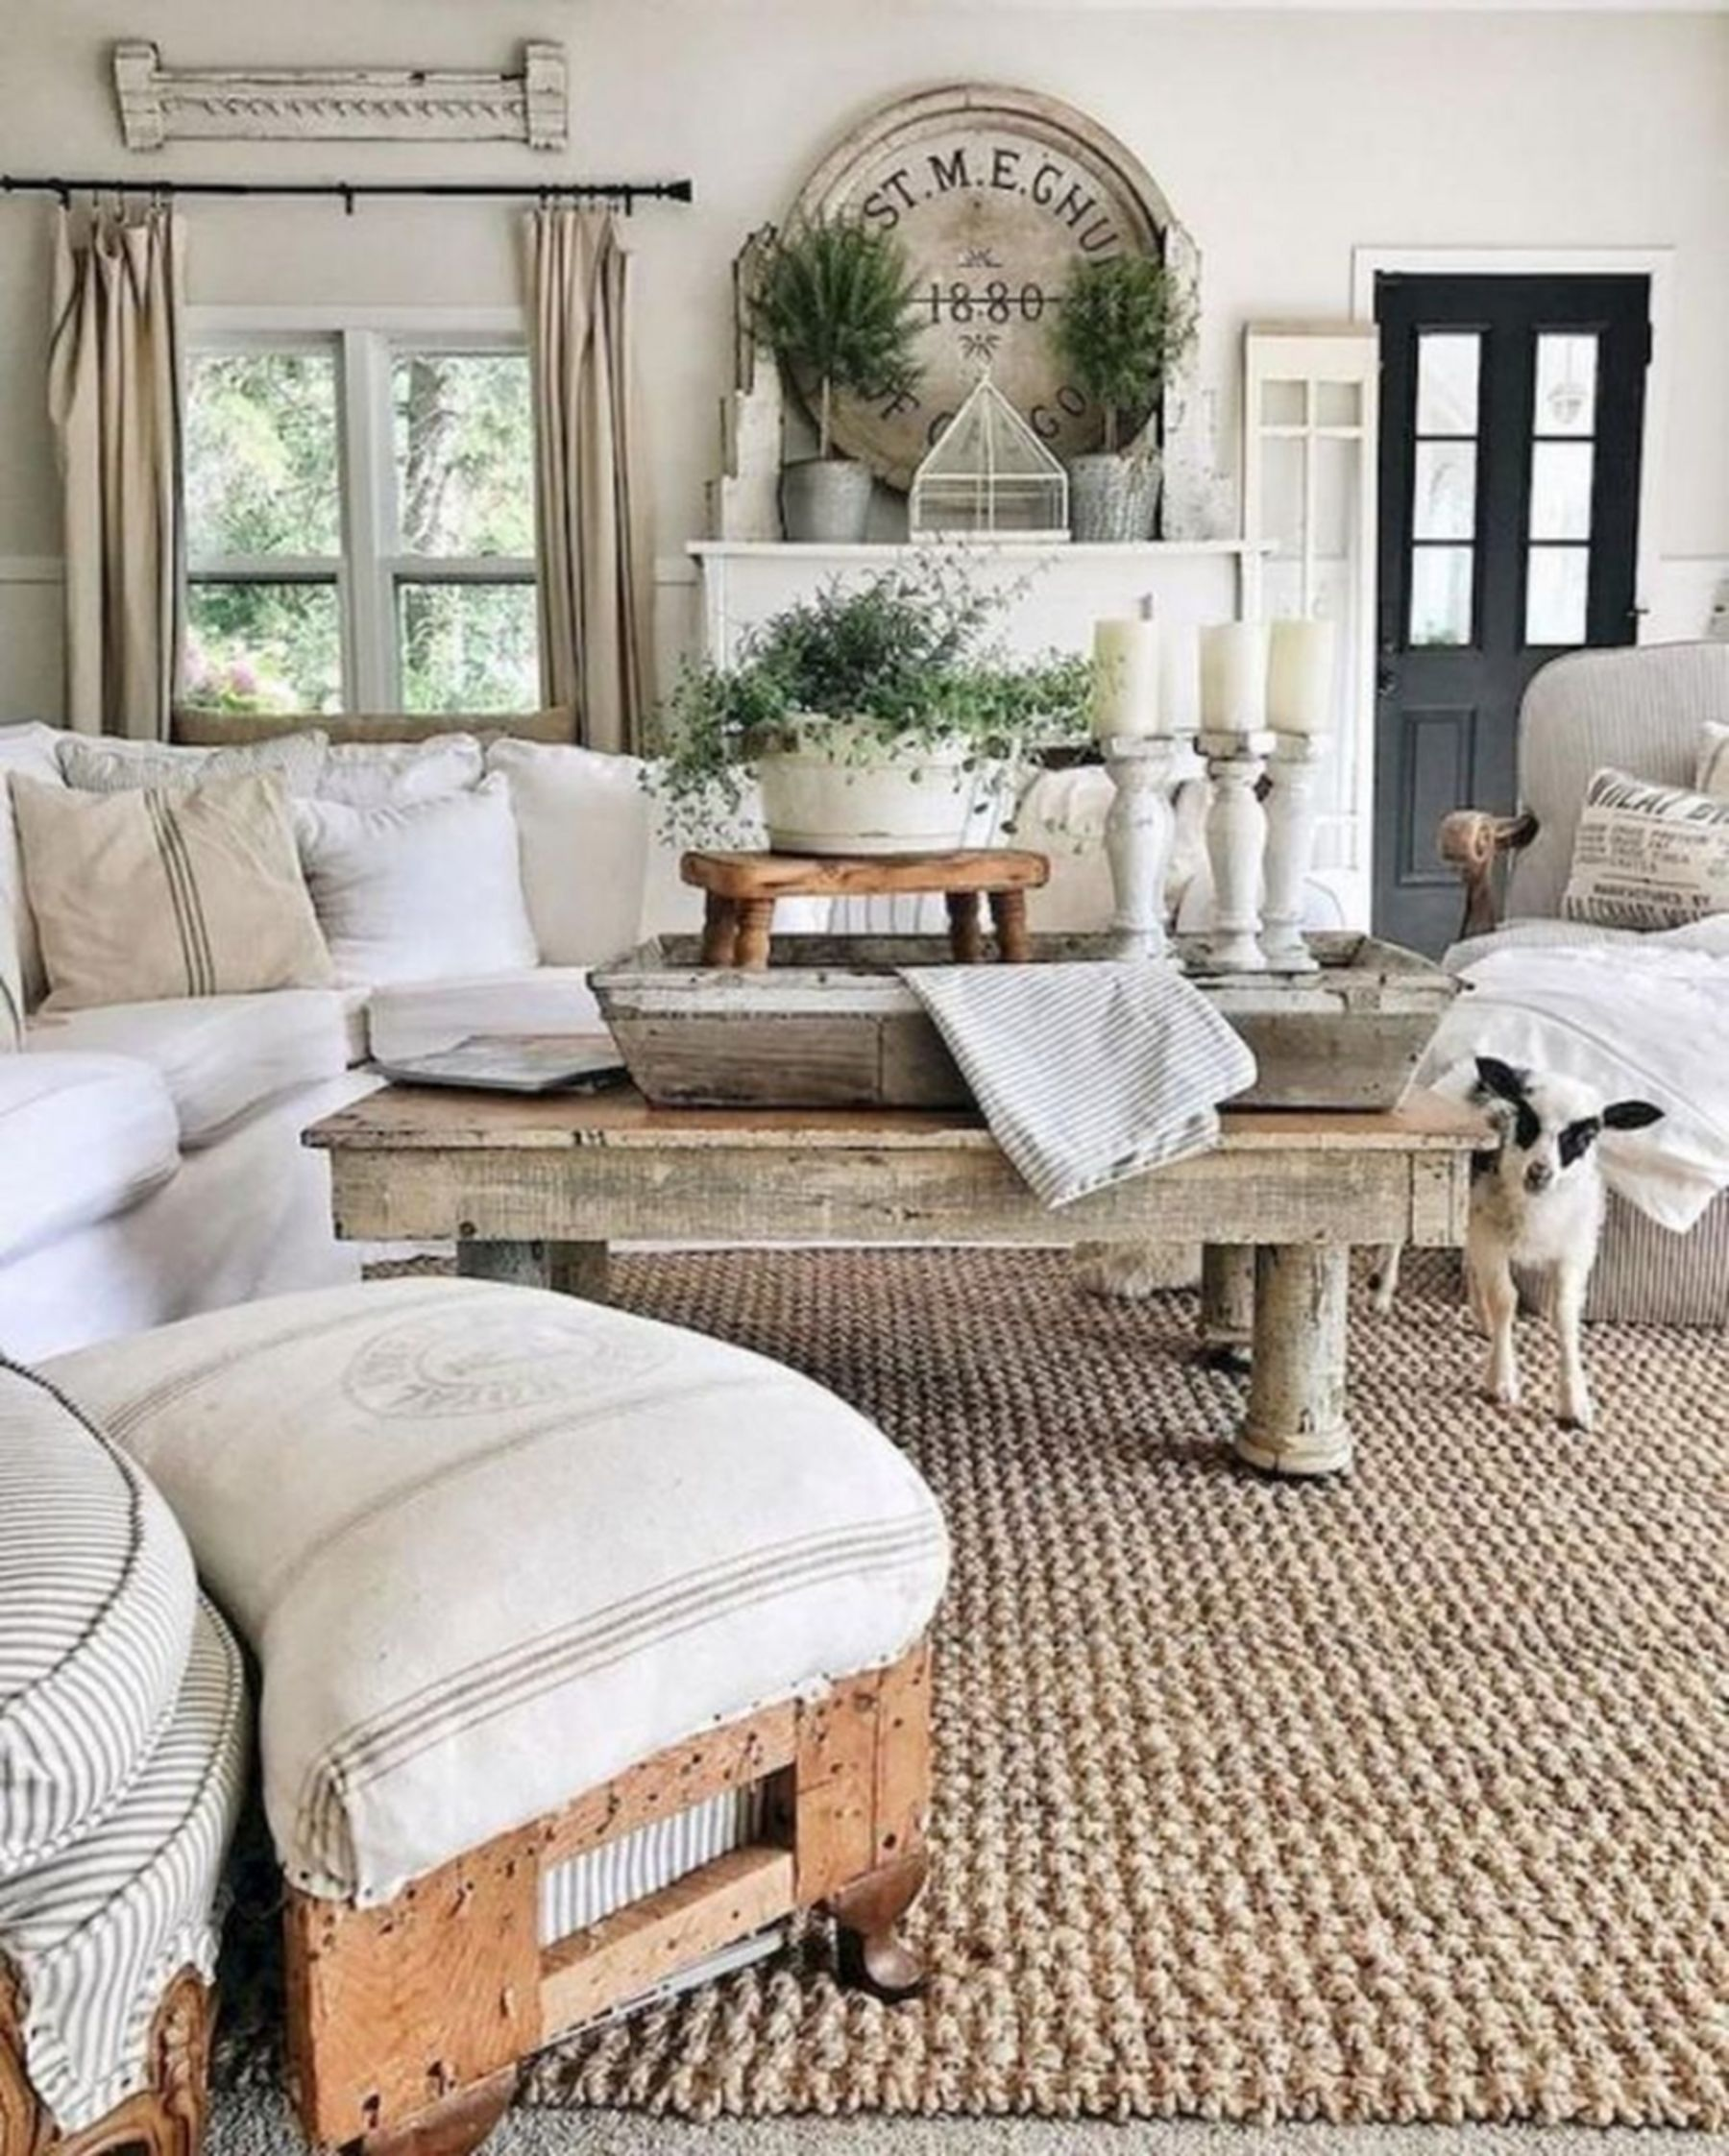 20 Stunning Rustic Living Room Design And Decor For Your